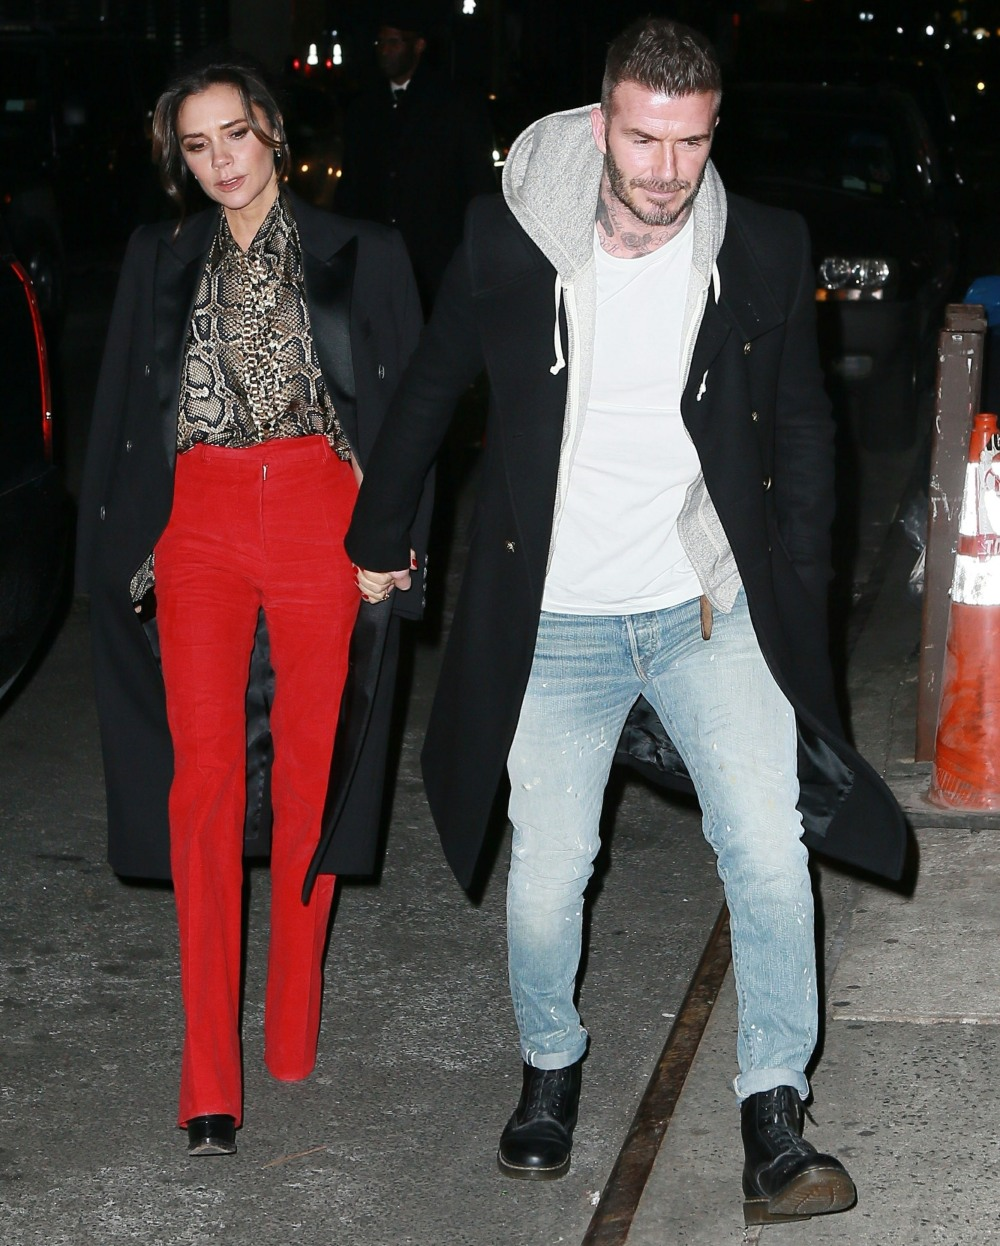 David and Victoria Beckham arrive at Victoria's Reebok party in New York